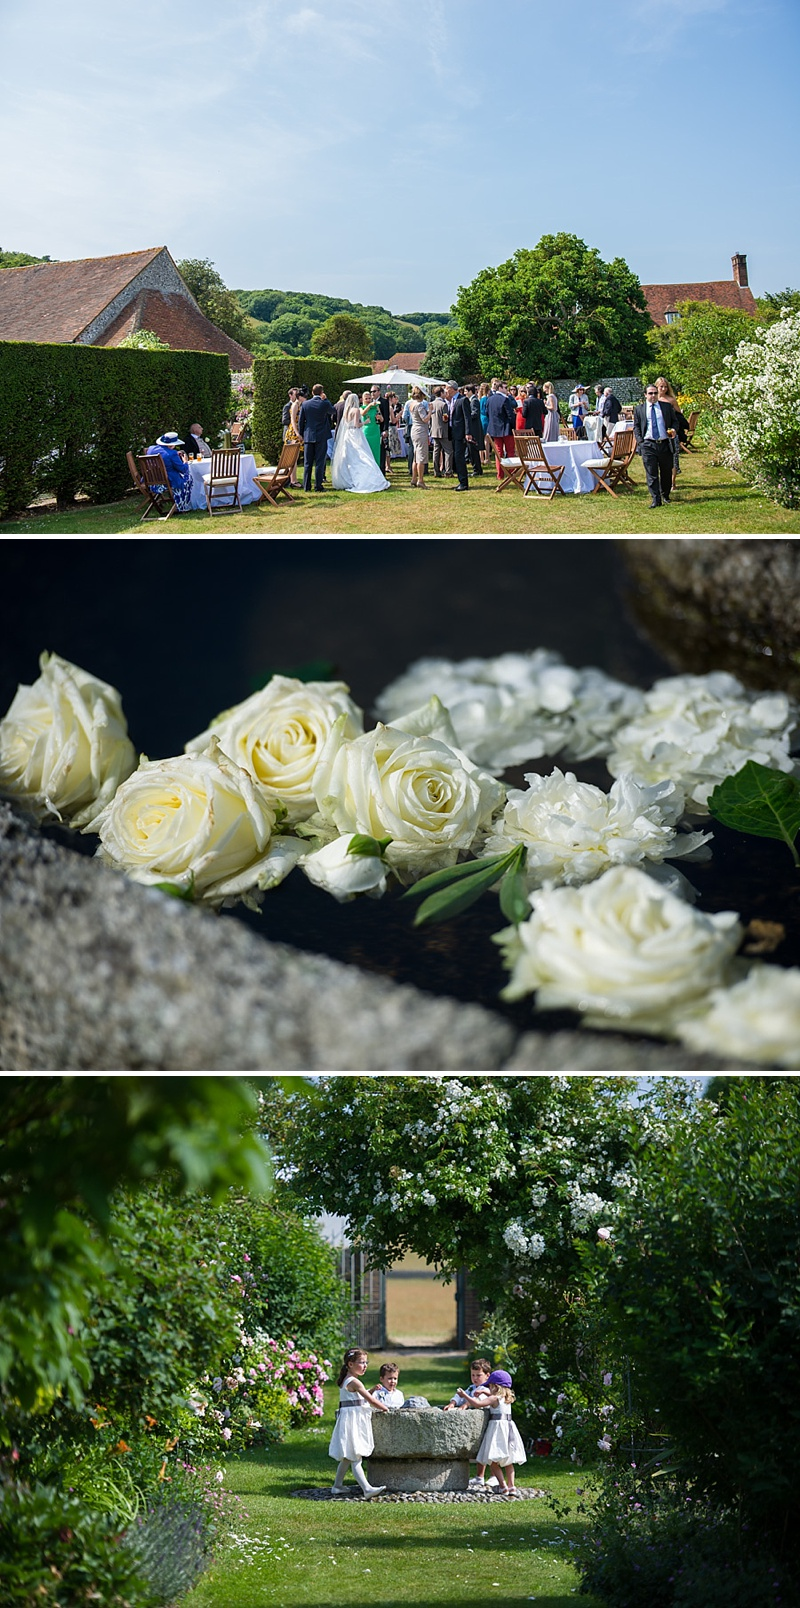 Ivory And Grey Themed Wedding At Birling Manor, Sussex, Bride In Opulence by Suzanne Neville, Images By Especially Amy_0007